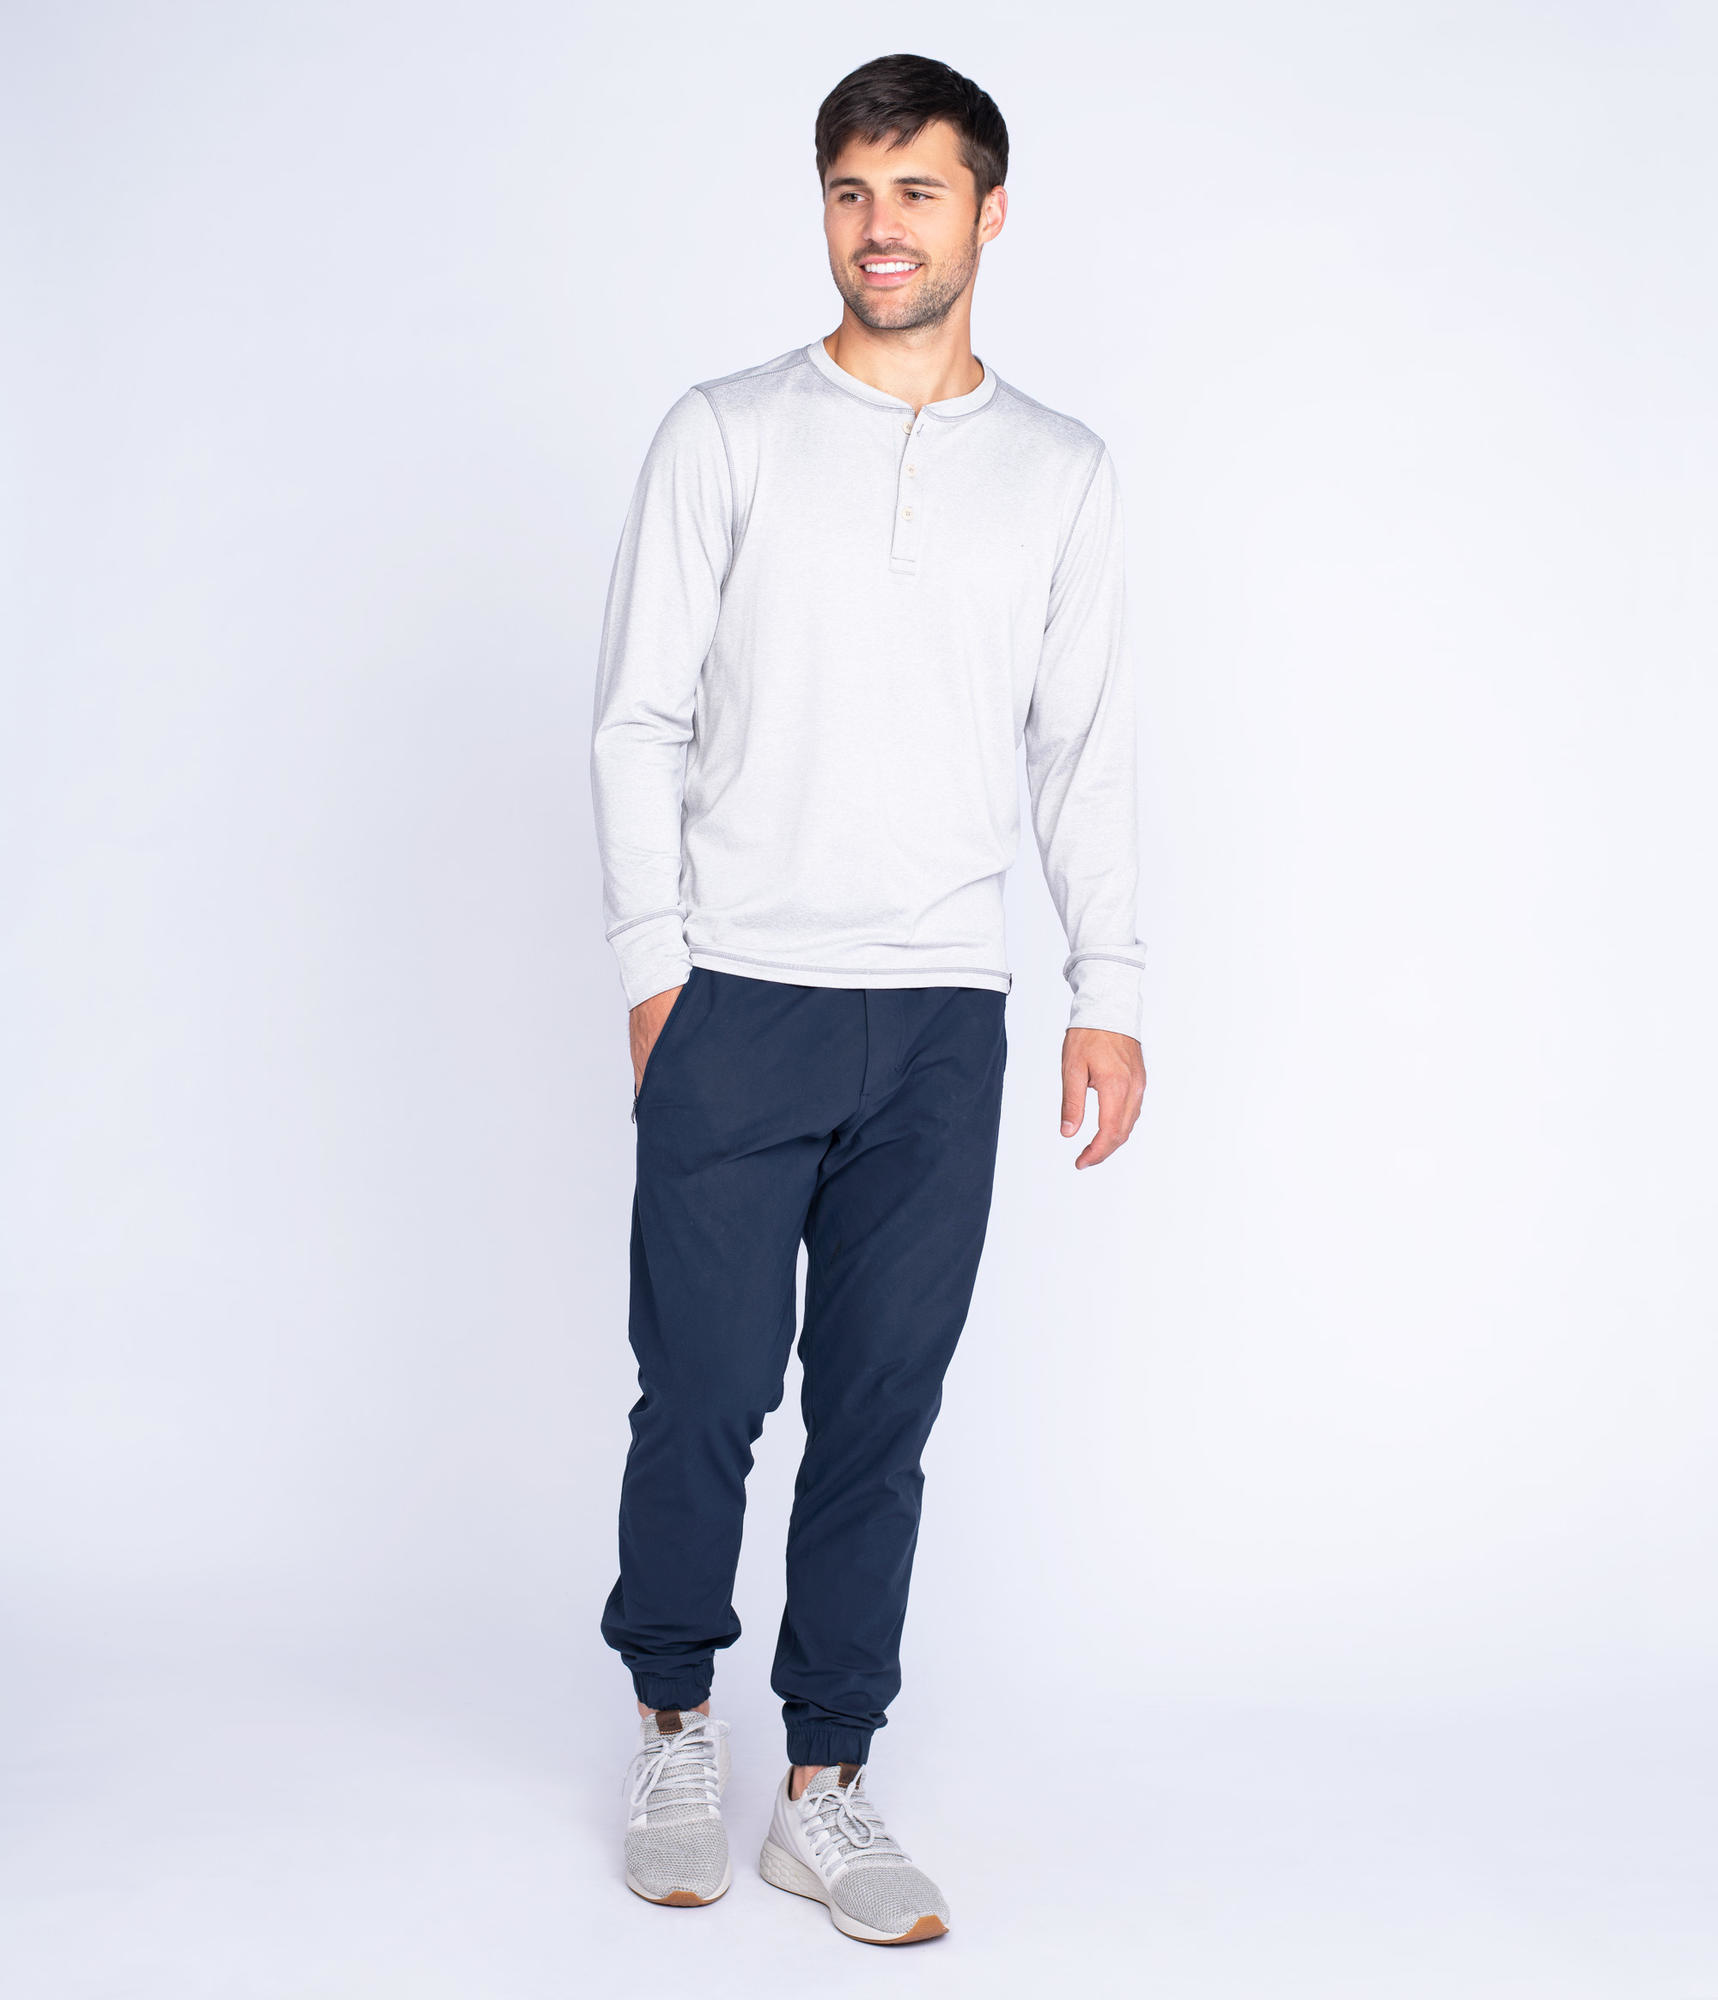 Southern Shirt Summit Henley LS